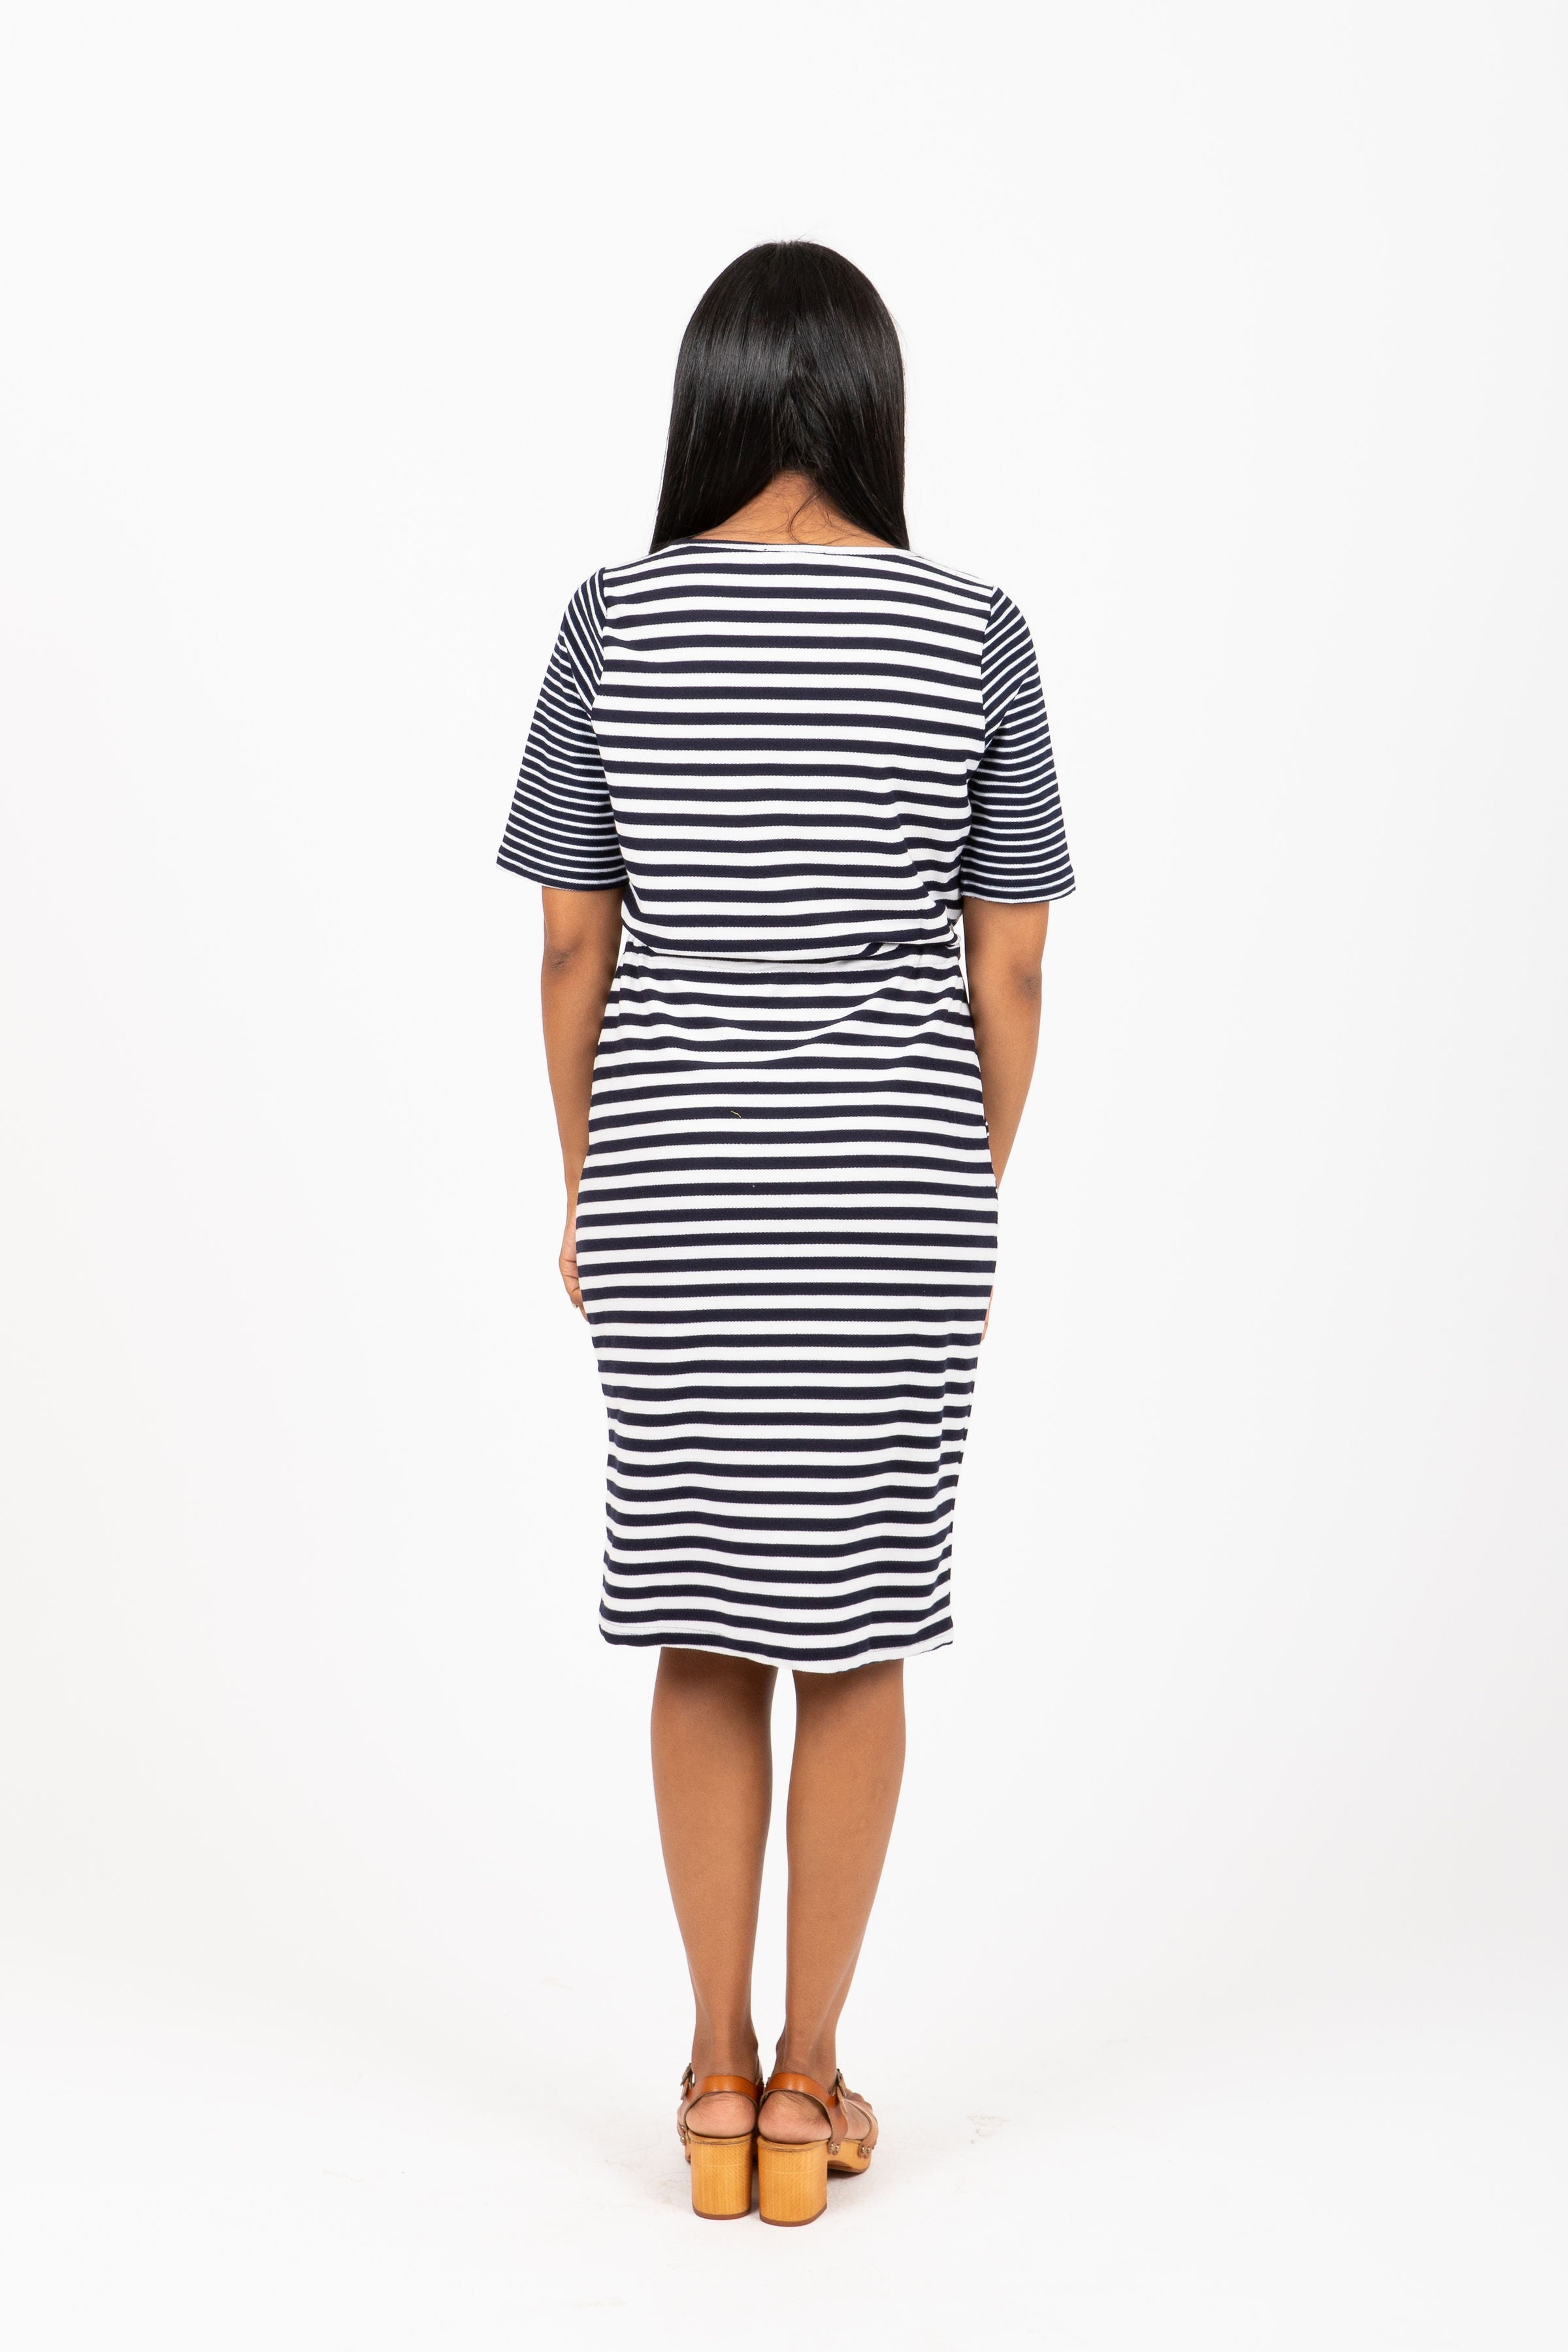 The Kemery Mixed Pattern Shift Dress in Navy